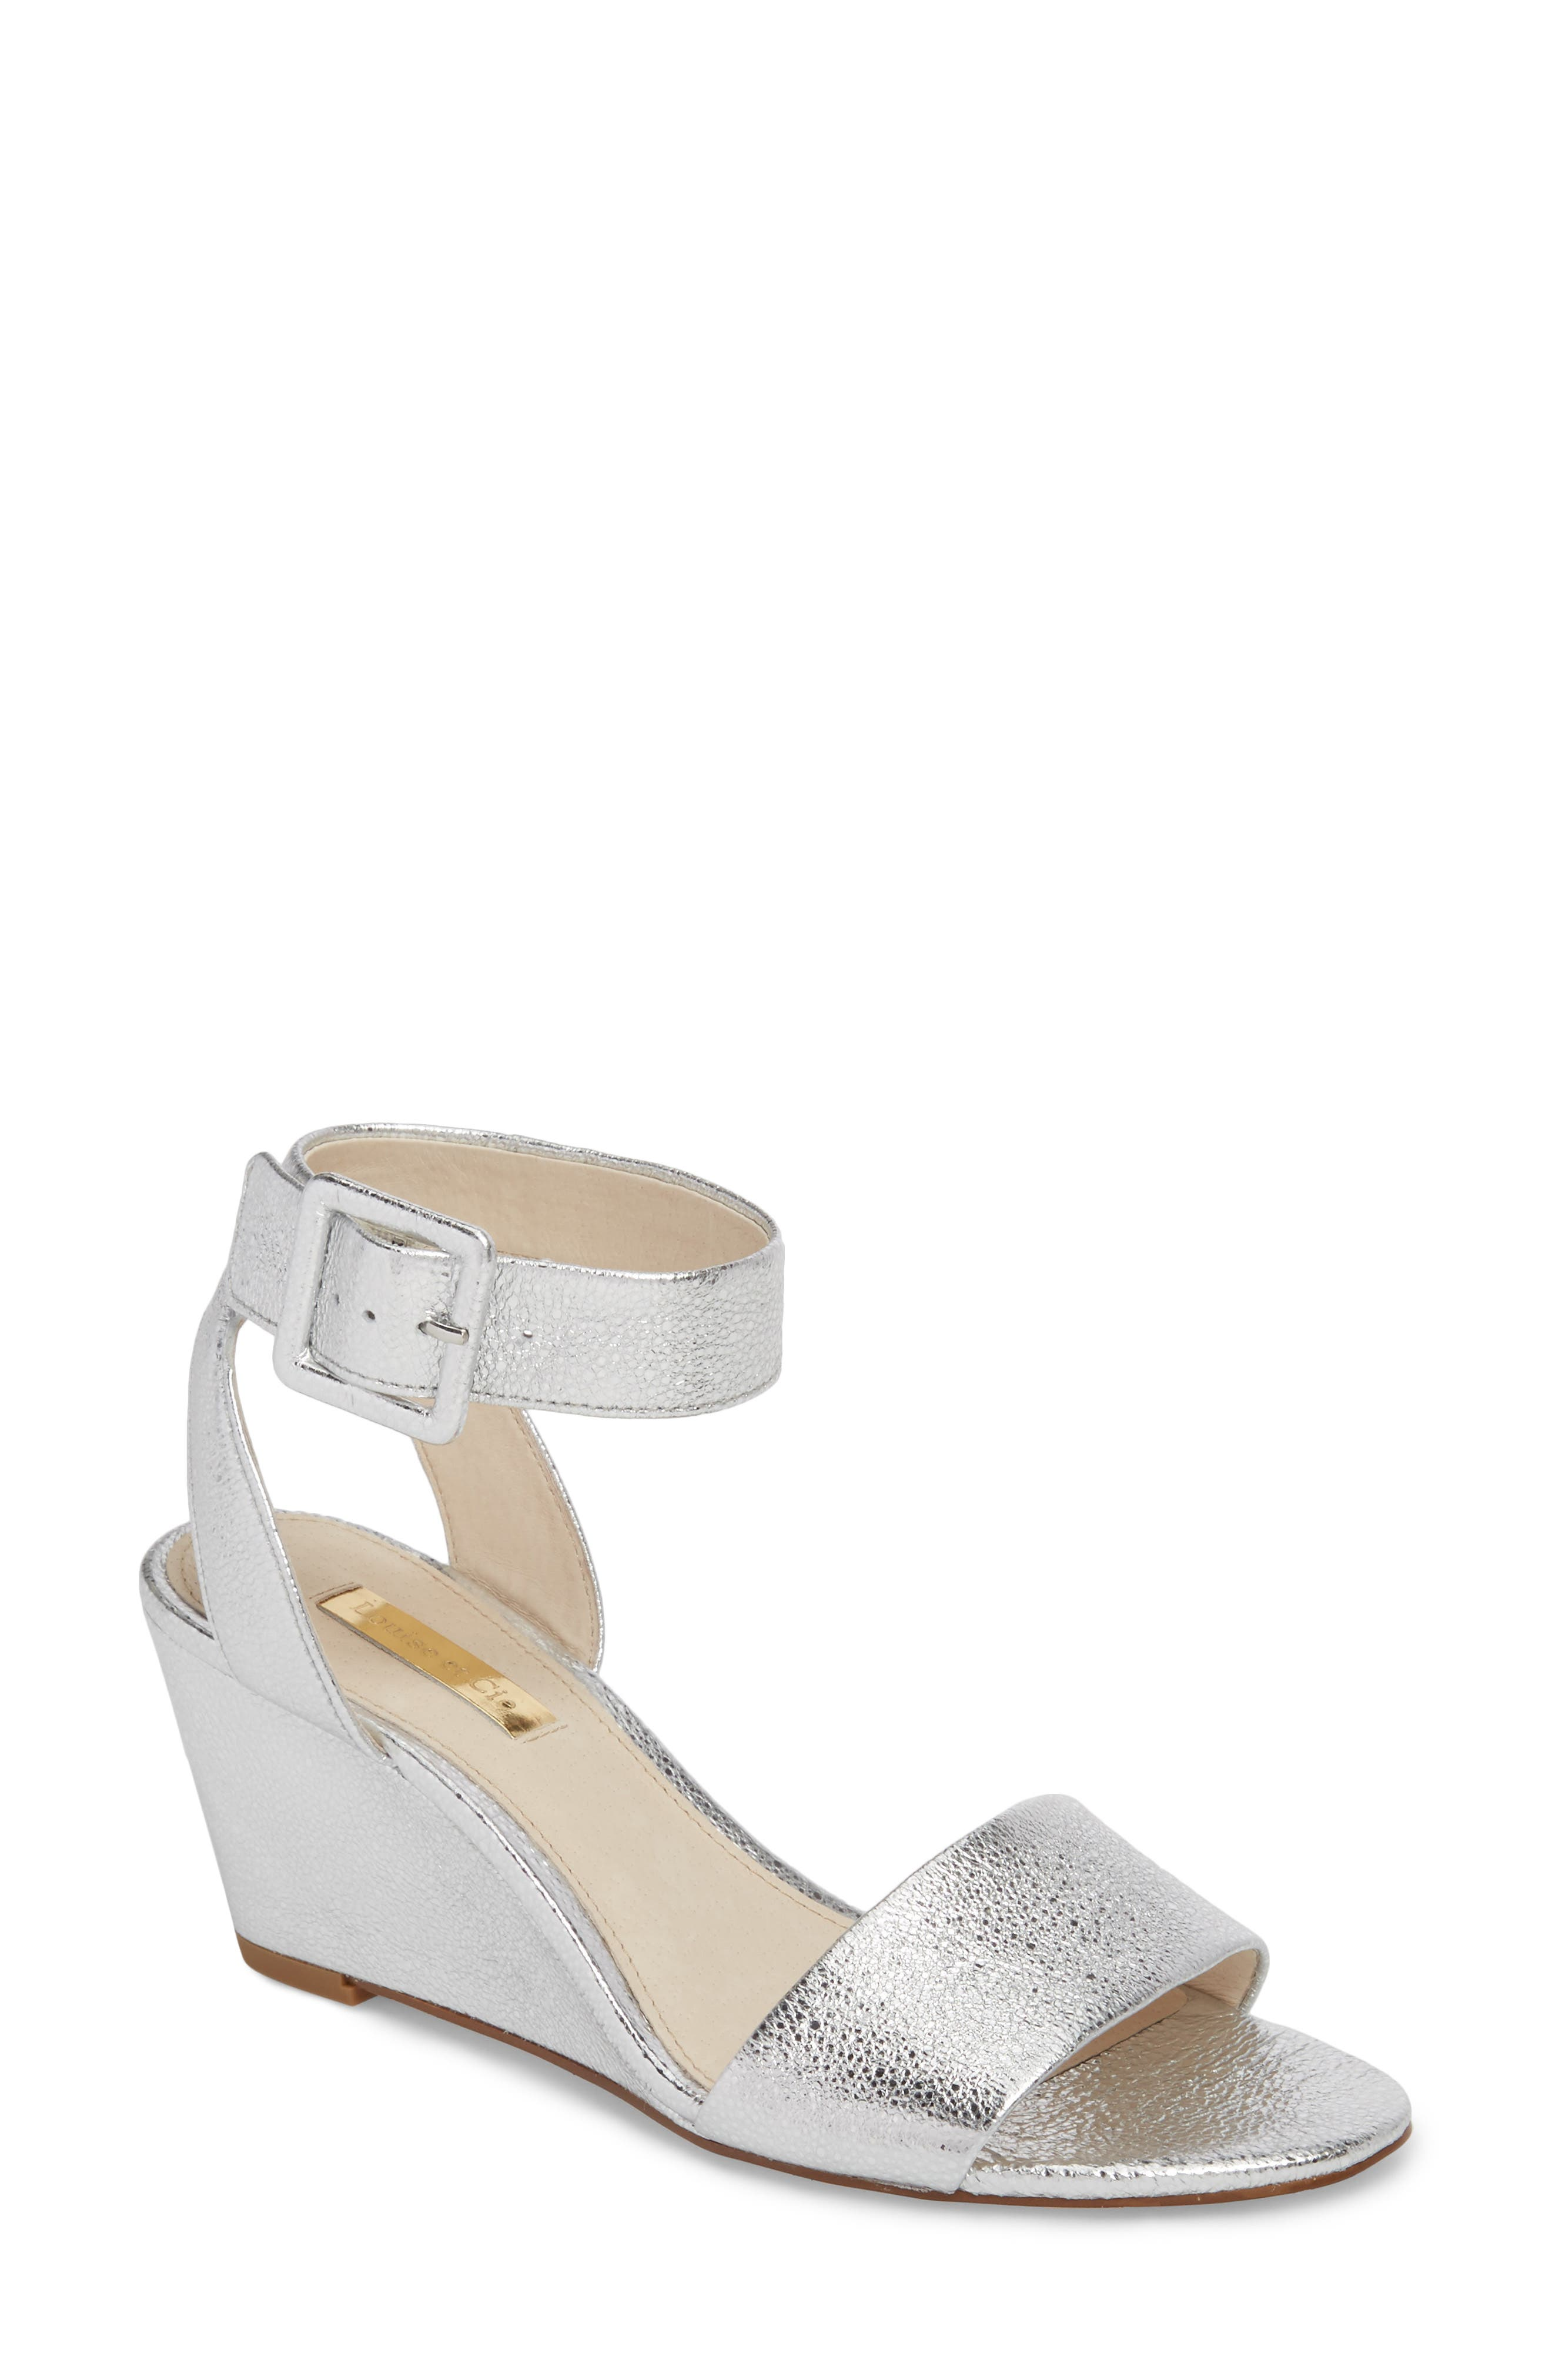 LOUISE ET CIE Punya Wedge Sandal, Main, color, STERLING LEATHER